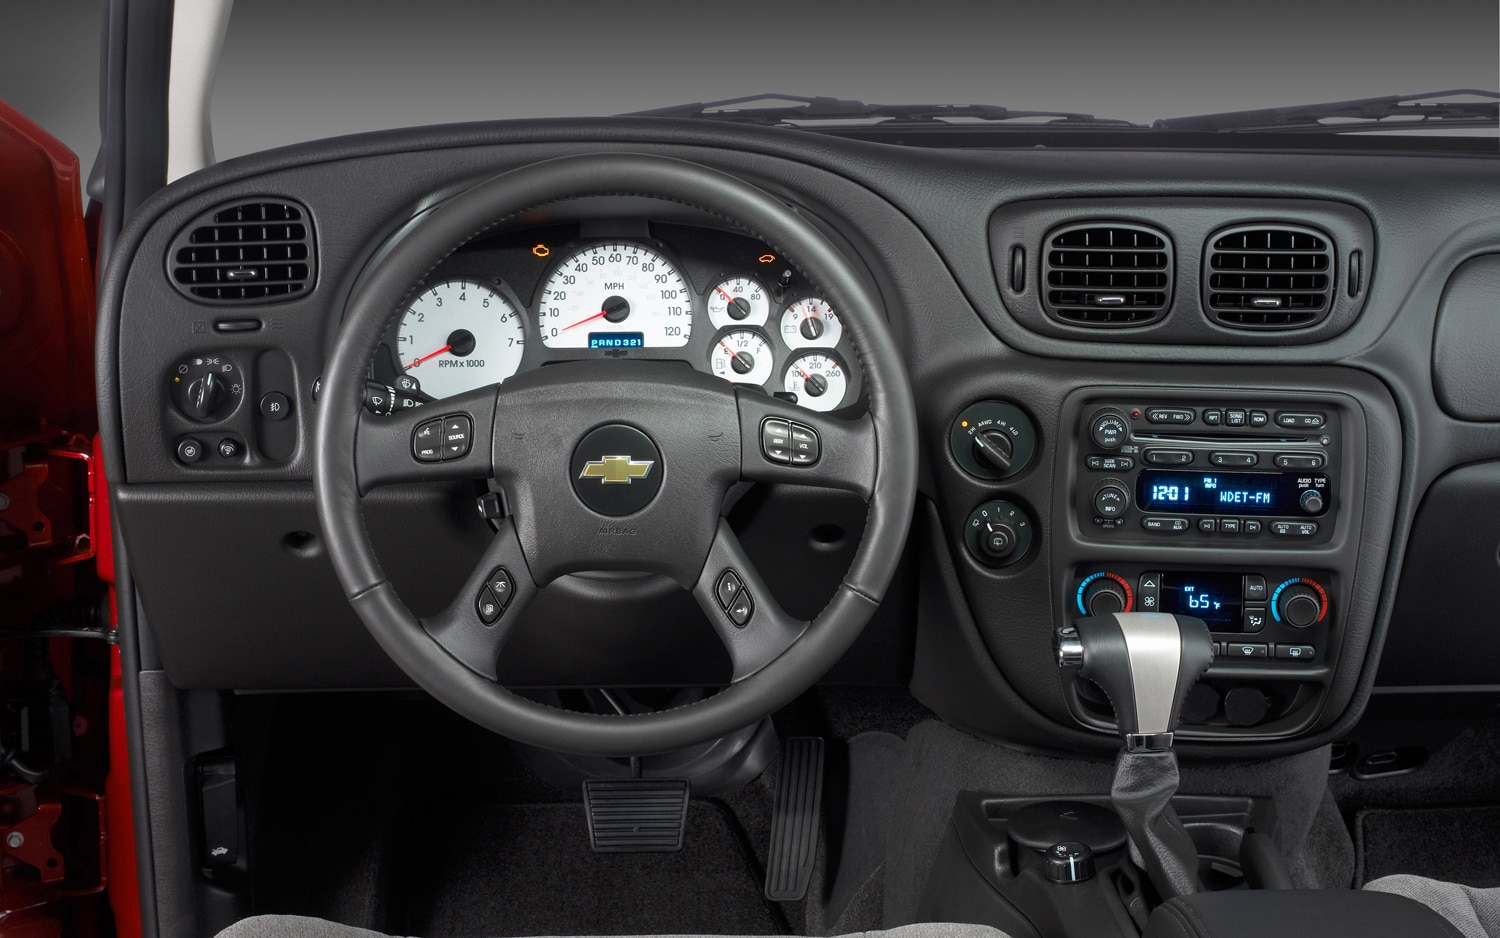 Hot Power Window Switches Prompt NHTSA Investigation of ...